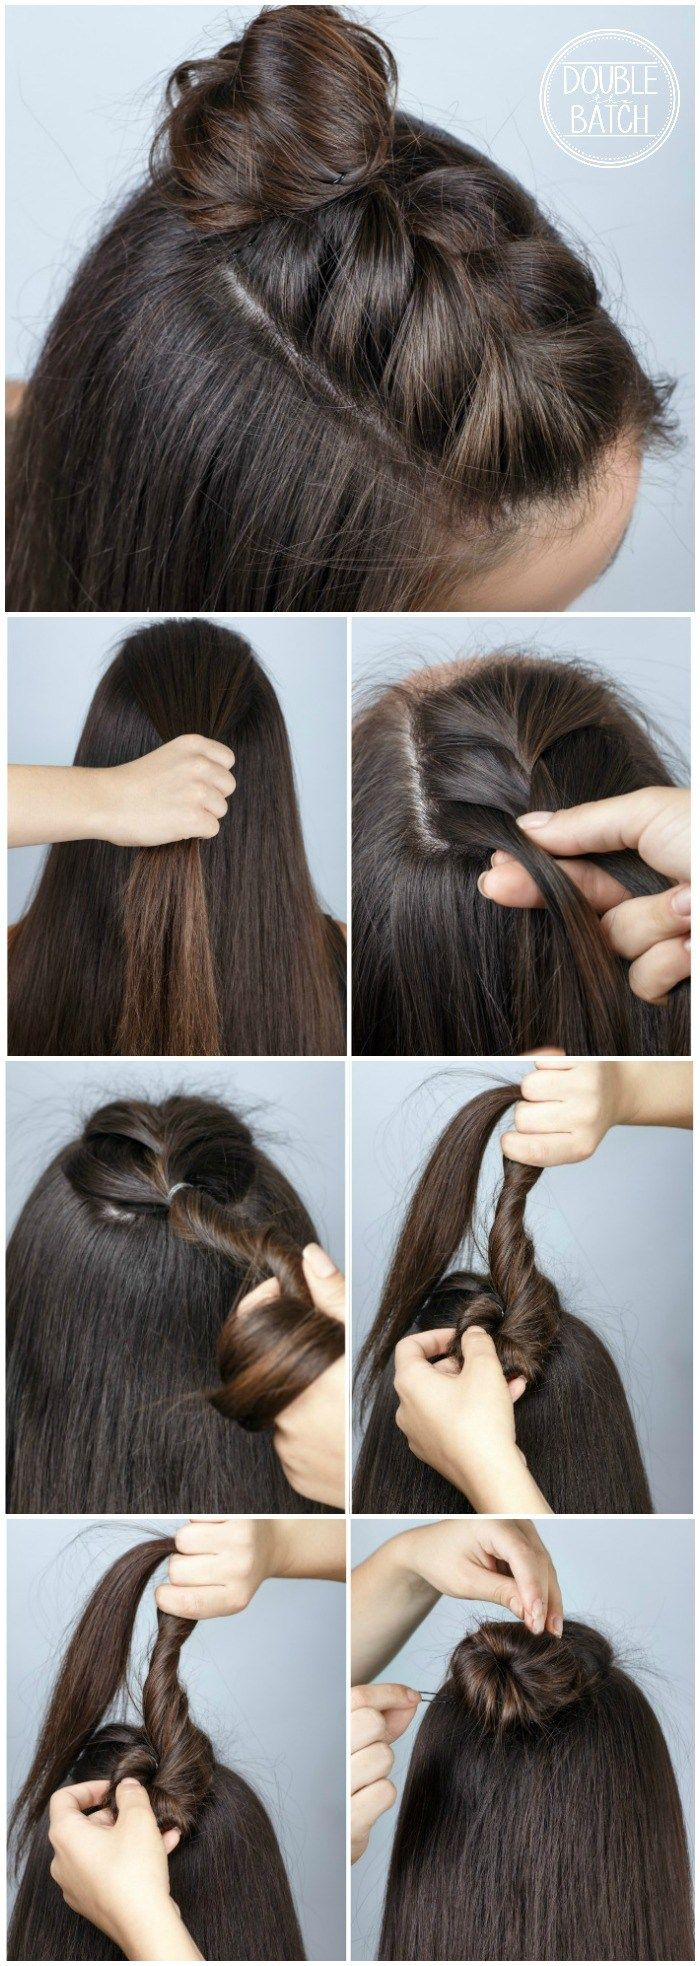 Diy half braid hairstyle tutorial such an easy and quick hair idea